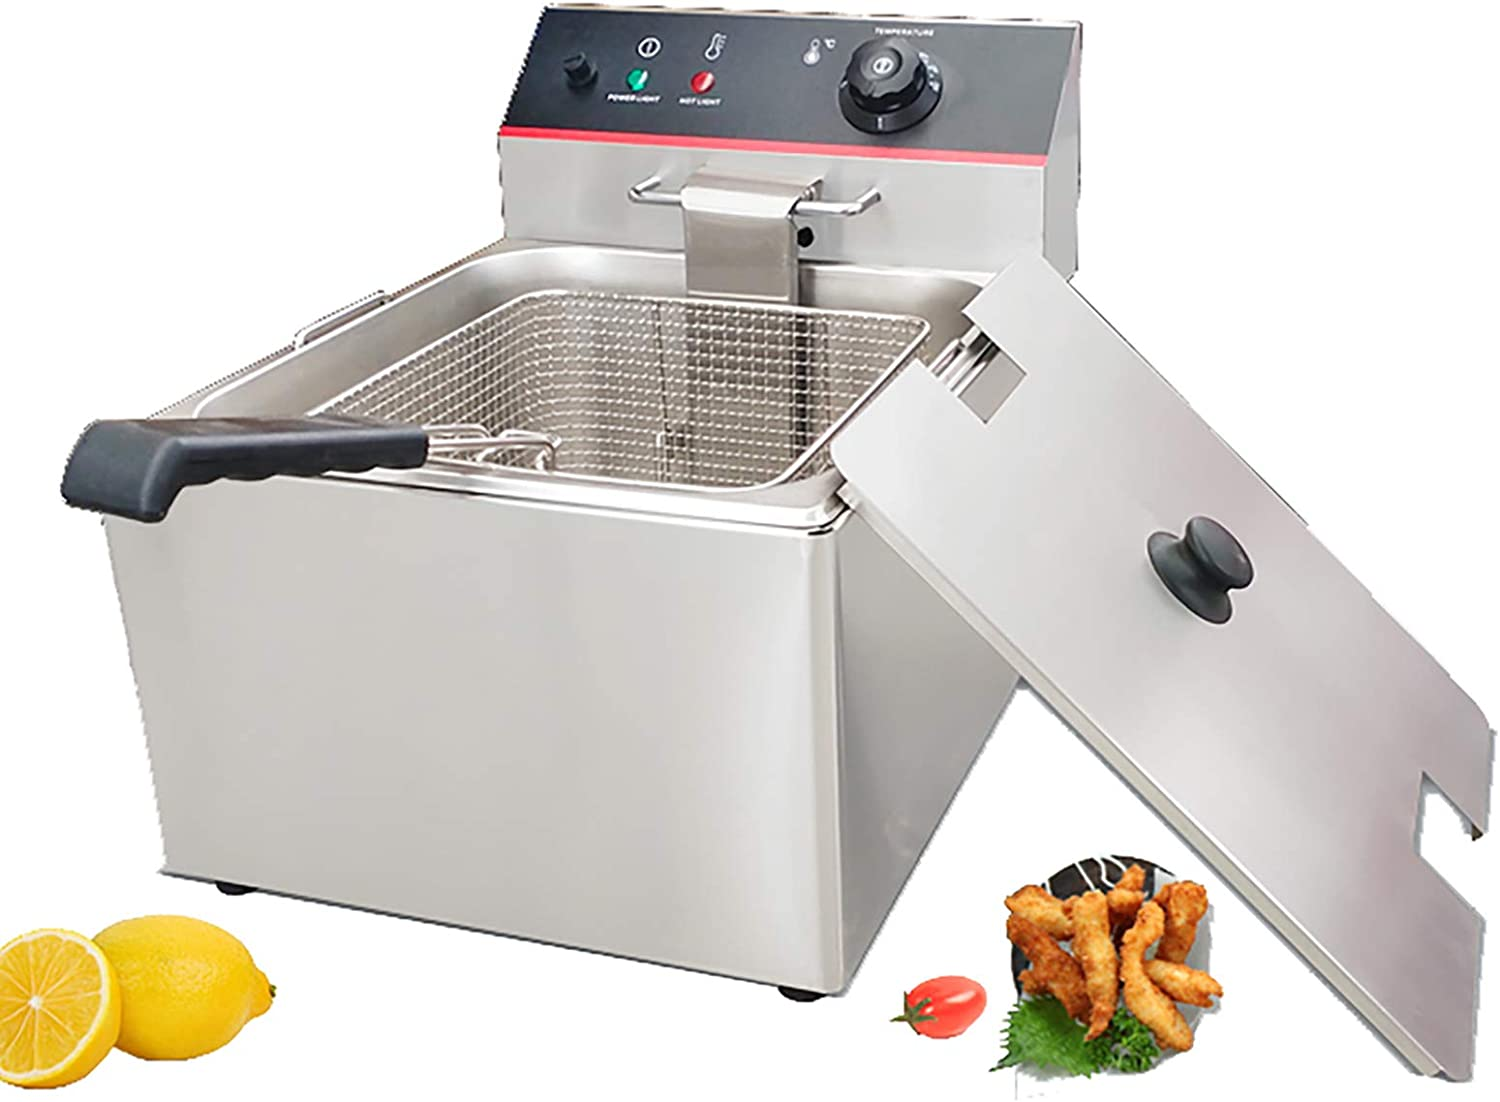 DayRoad Commercial Deep Fryer Electric Countertop 6L Oil Tank Basket 2500W Stainless Steel Chicken Chips Fryer for Fries Home Kitchen Restaurant